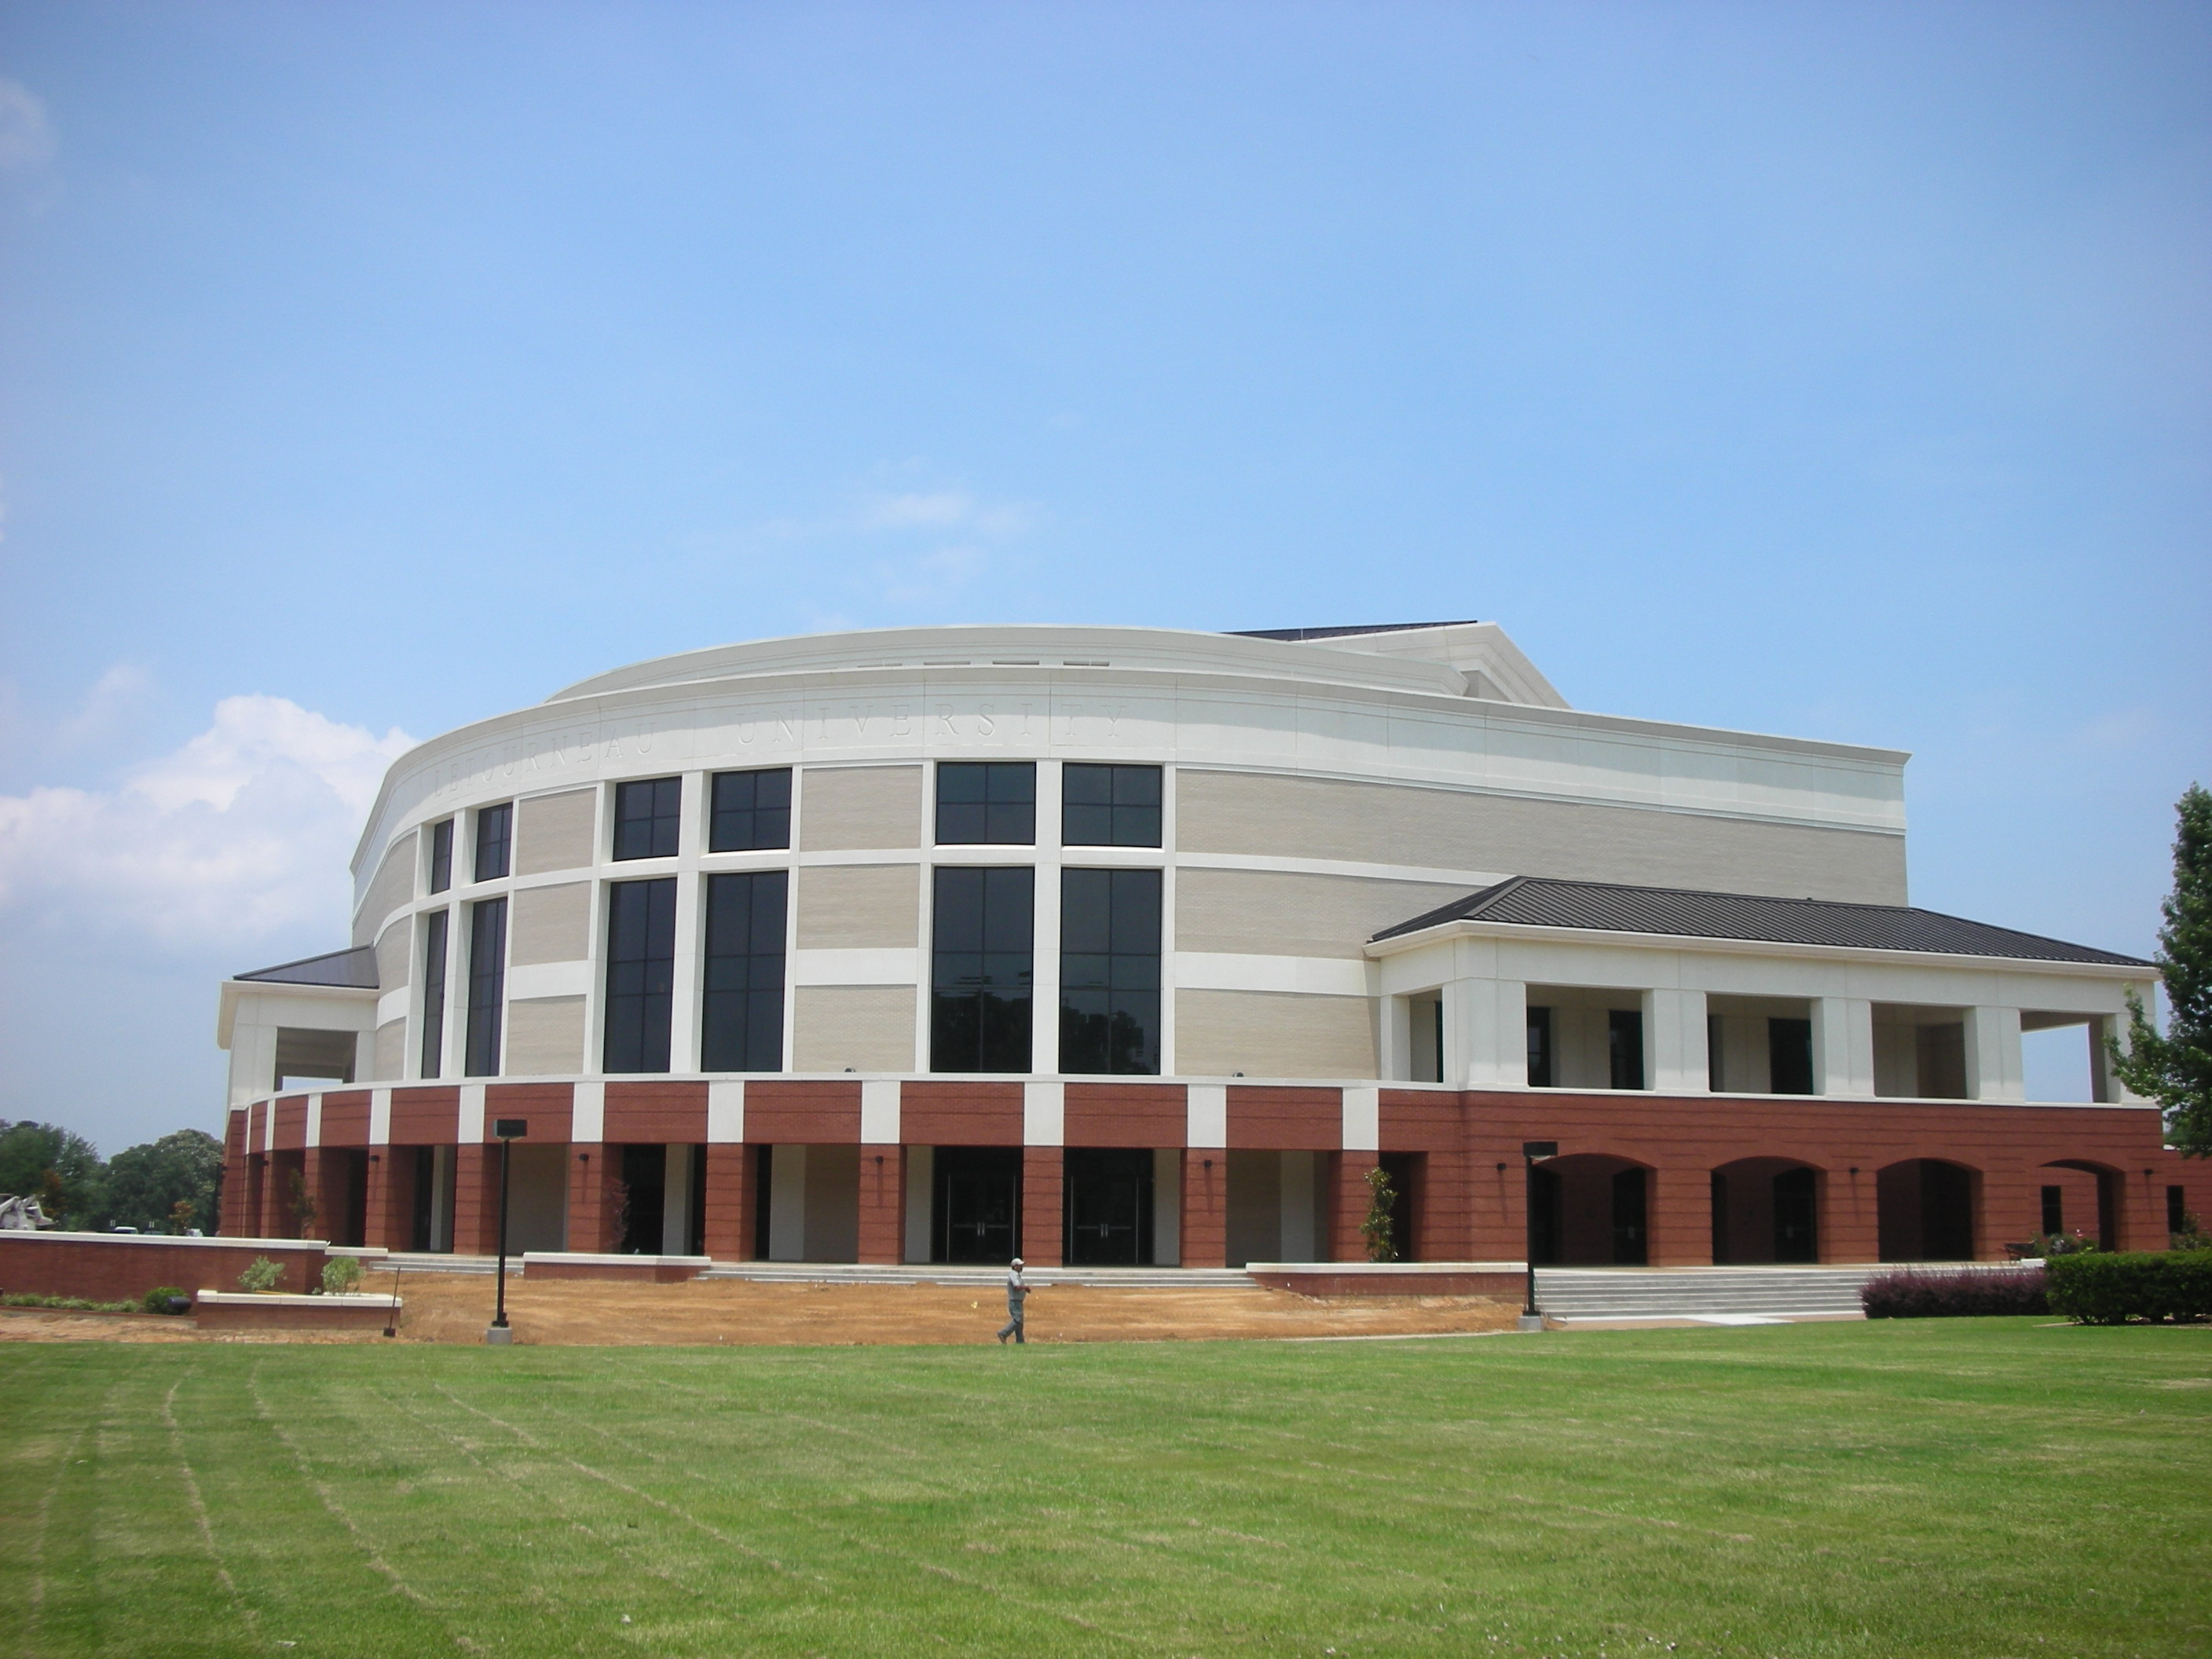 S.E. Belcher Jr. Chapel/Perf. Center